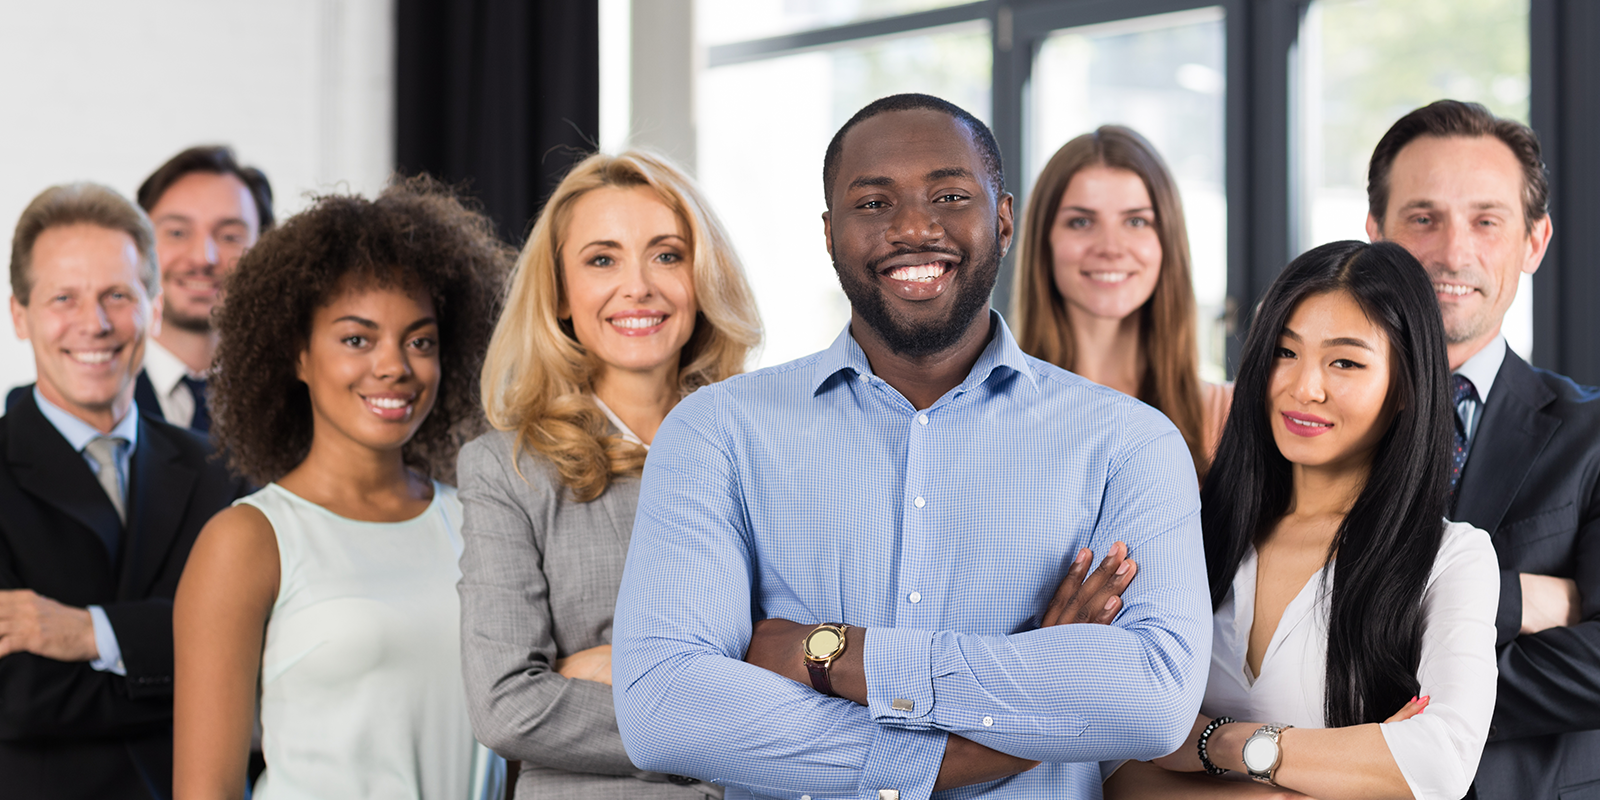 A diverse group of young professionals smiling with arms folded